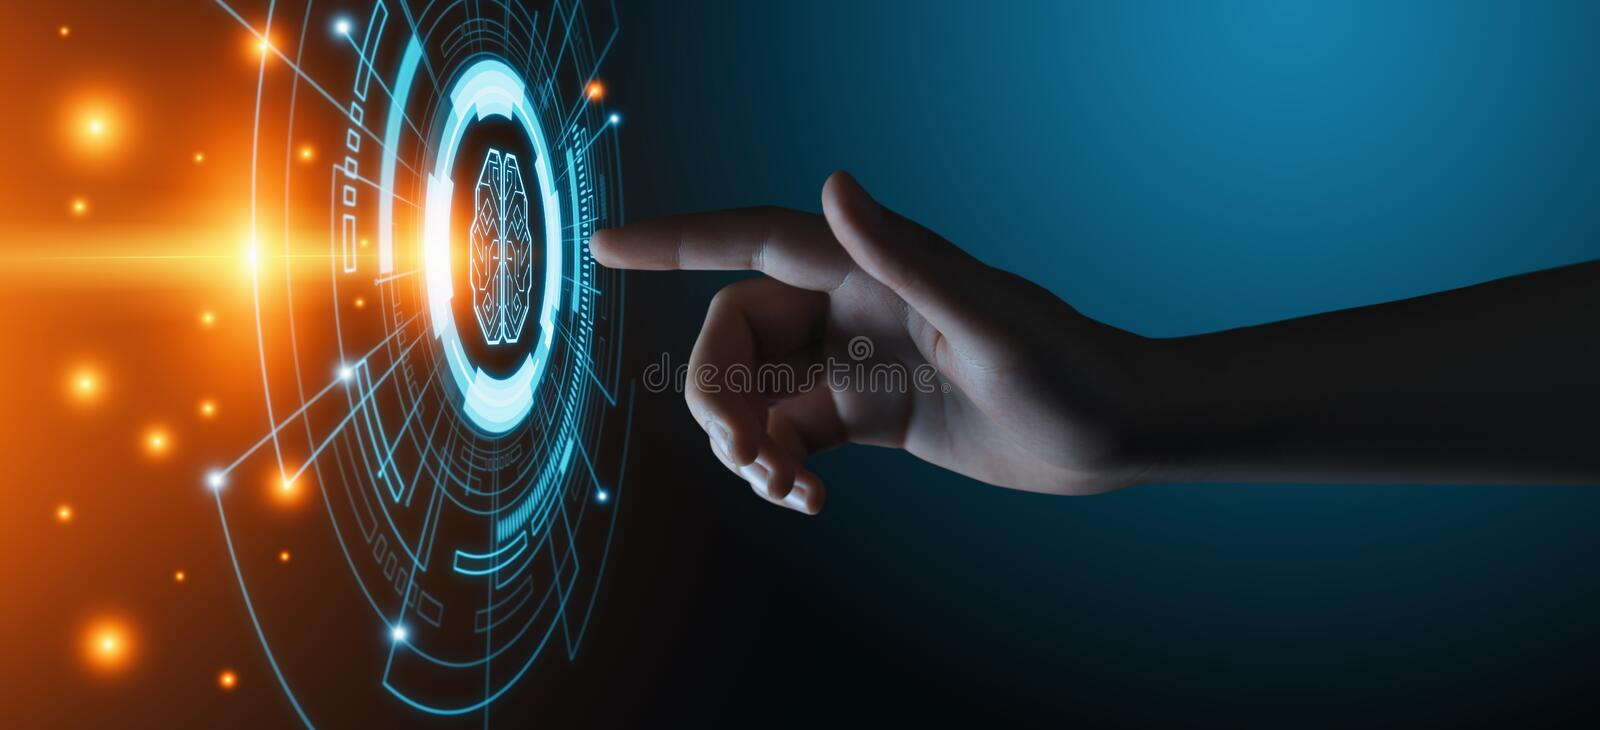 Artificial intelligence Machine Learning Business Internet Technology Concept.  royalty free stock image